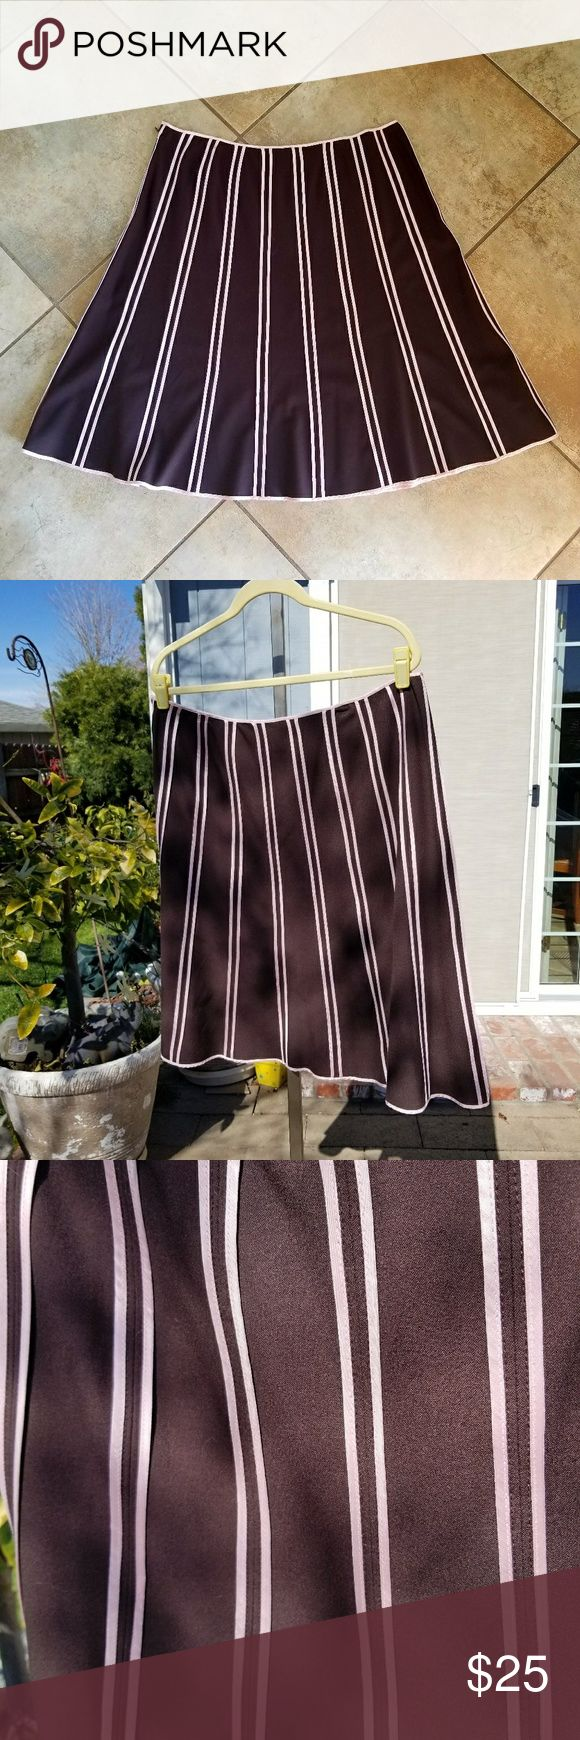 """Flirty Skirt! From Macy's INC Woman's Collection,  this flirty chocolate brown skirt with blush pink satin ribbon trim is beautiful for Spring and Summer!!  Side zip  with hook and eye closure at the waist.   Length:  25""""   Beautiful fabrics,  nice weight,  nice swing movement when walking.   Only worn once.   Looks great with coordinating tank and pullover sweater,  both posted separately. INC International Concepts Skirts A-Line or Full"""